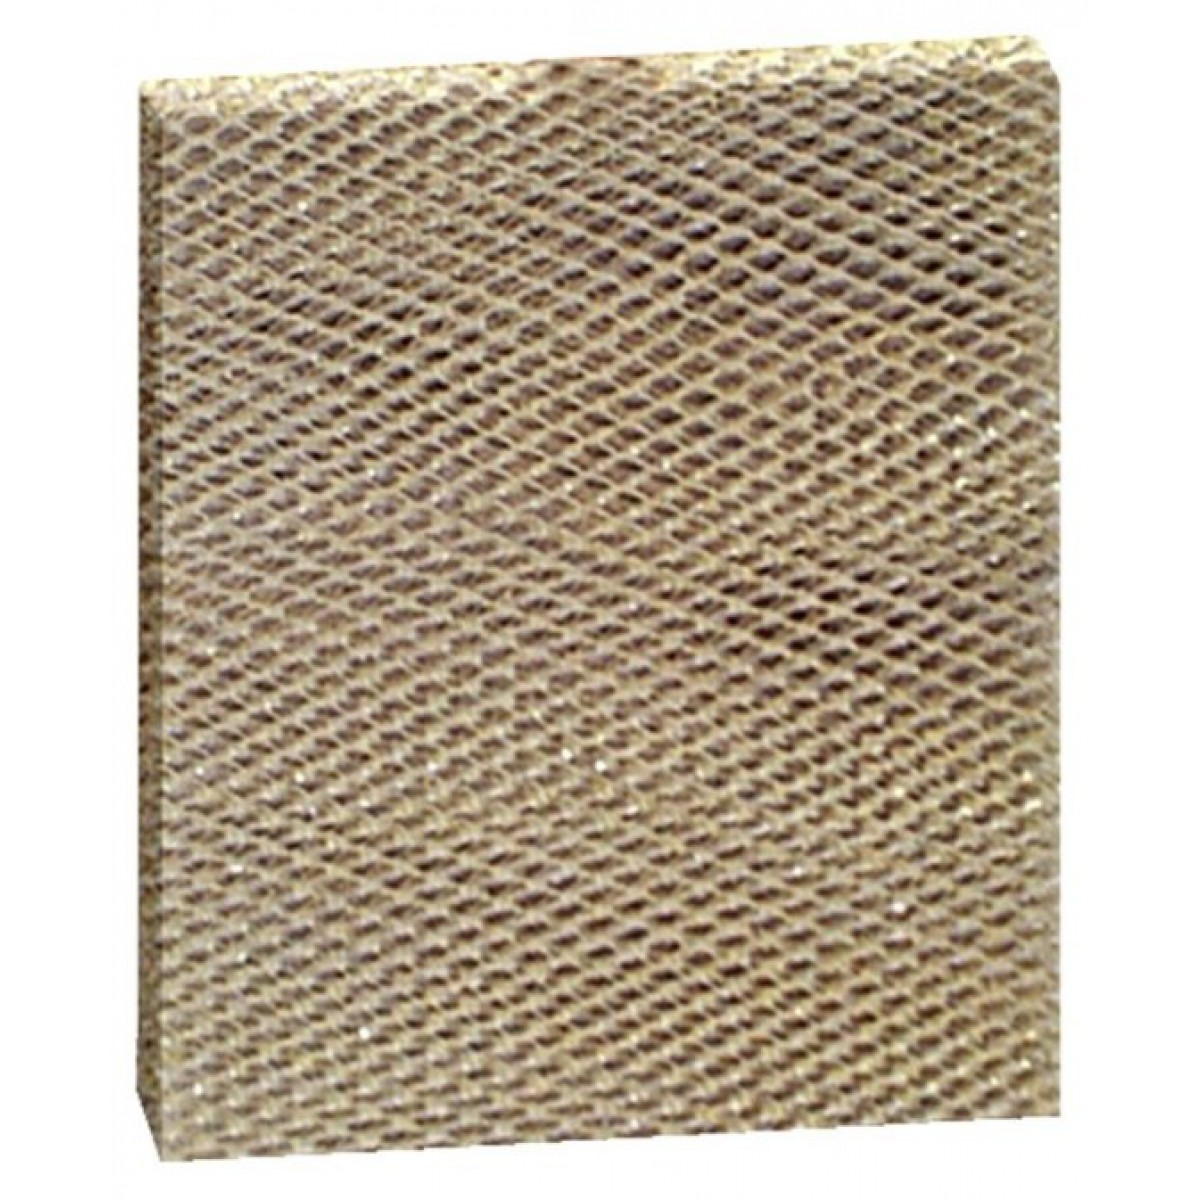 Home > Honeywell HE225A Humidifier Filter Replacement by Tier1 #442C1D